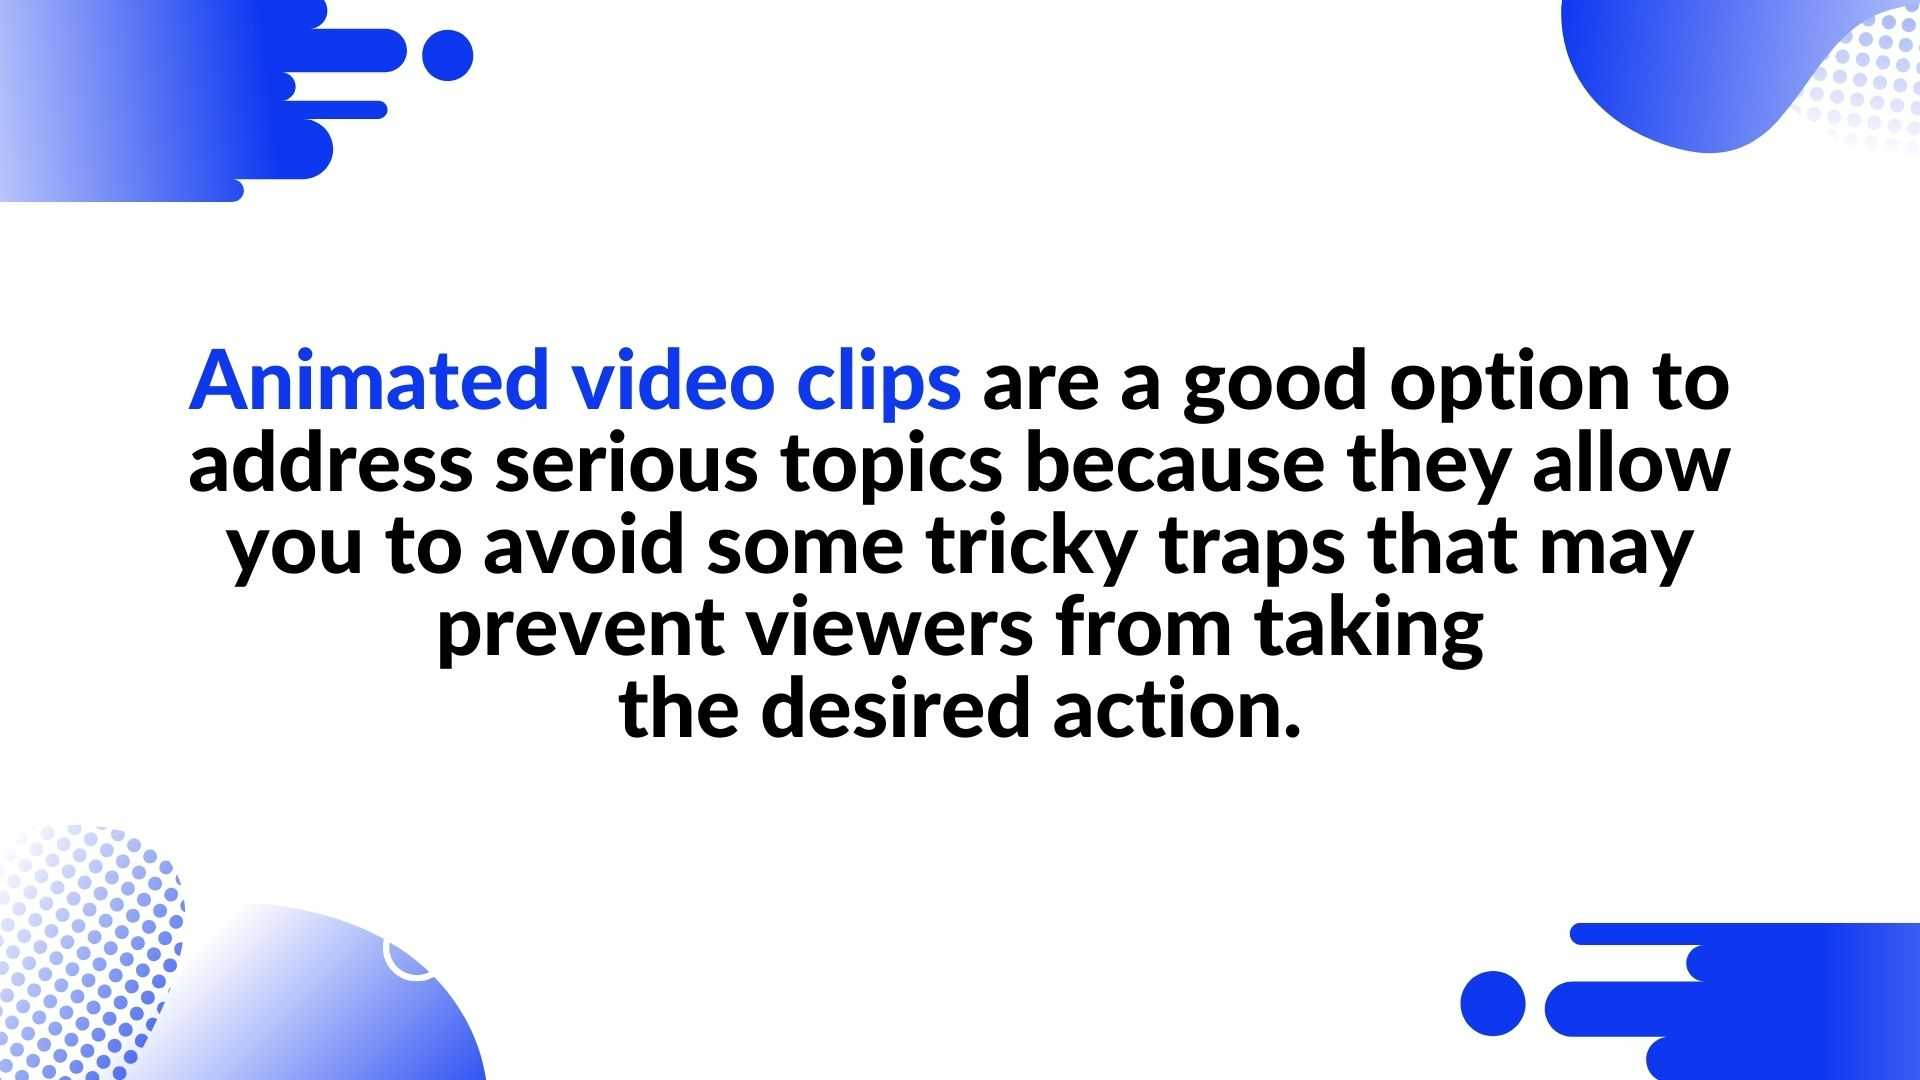 Animated video clips are a good option for covering important social issues